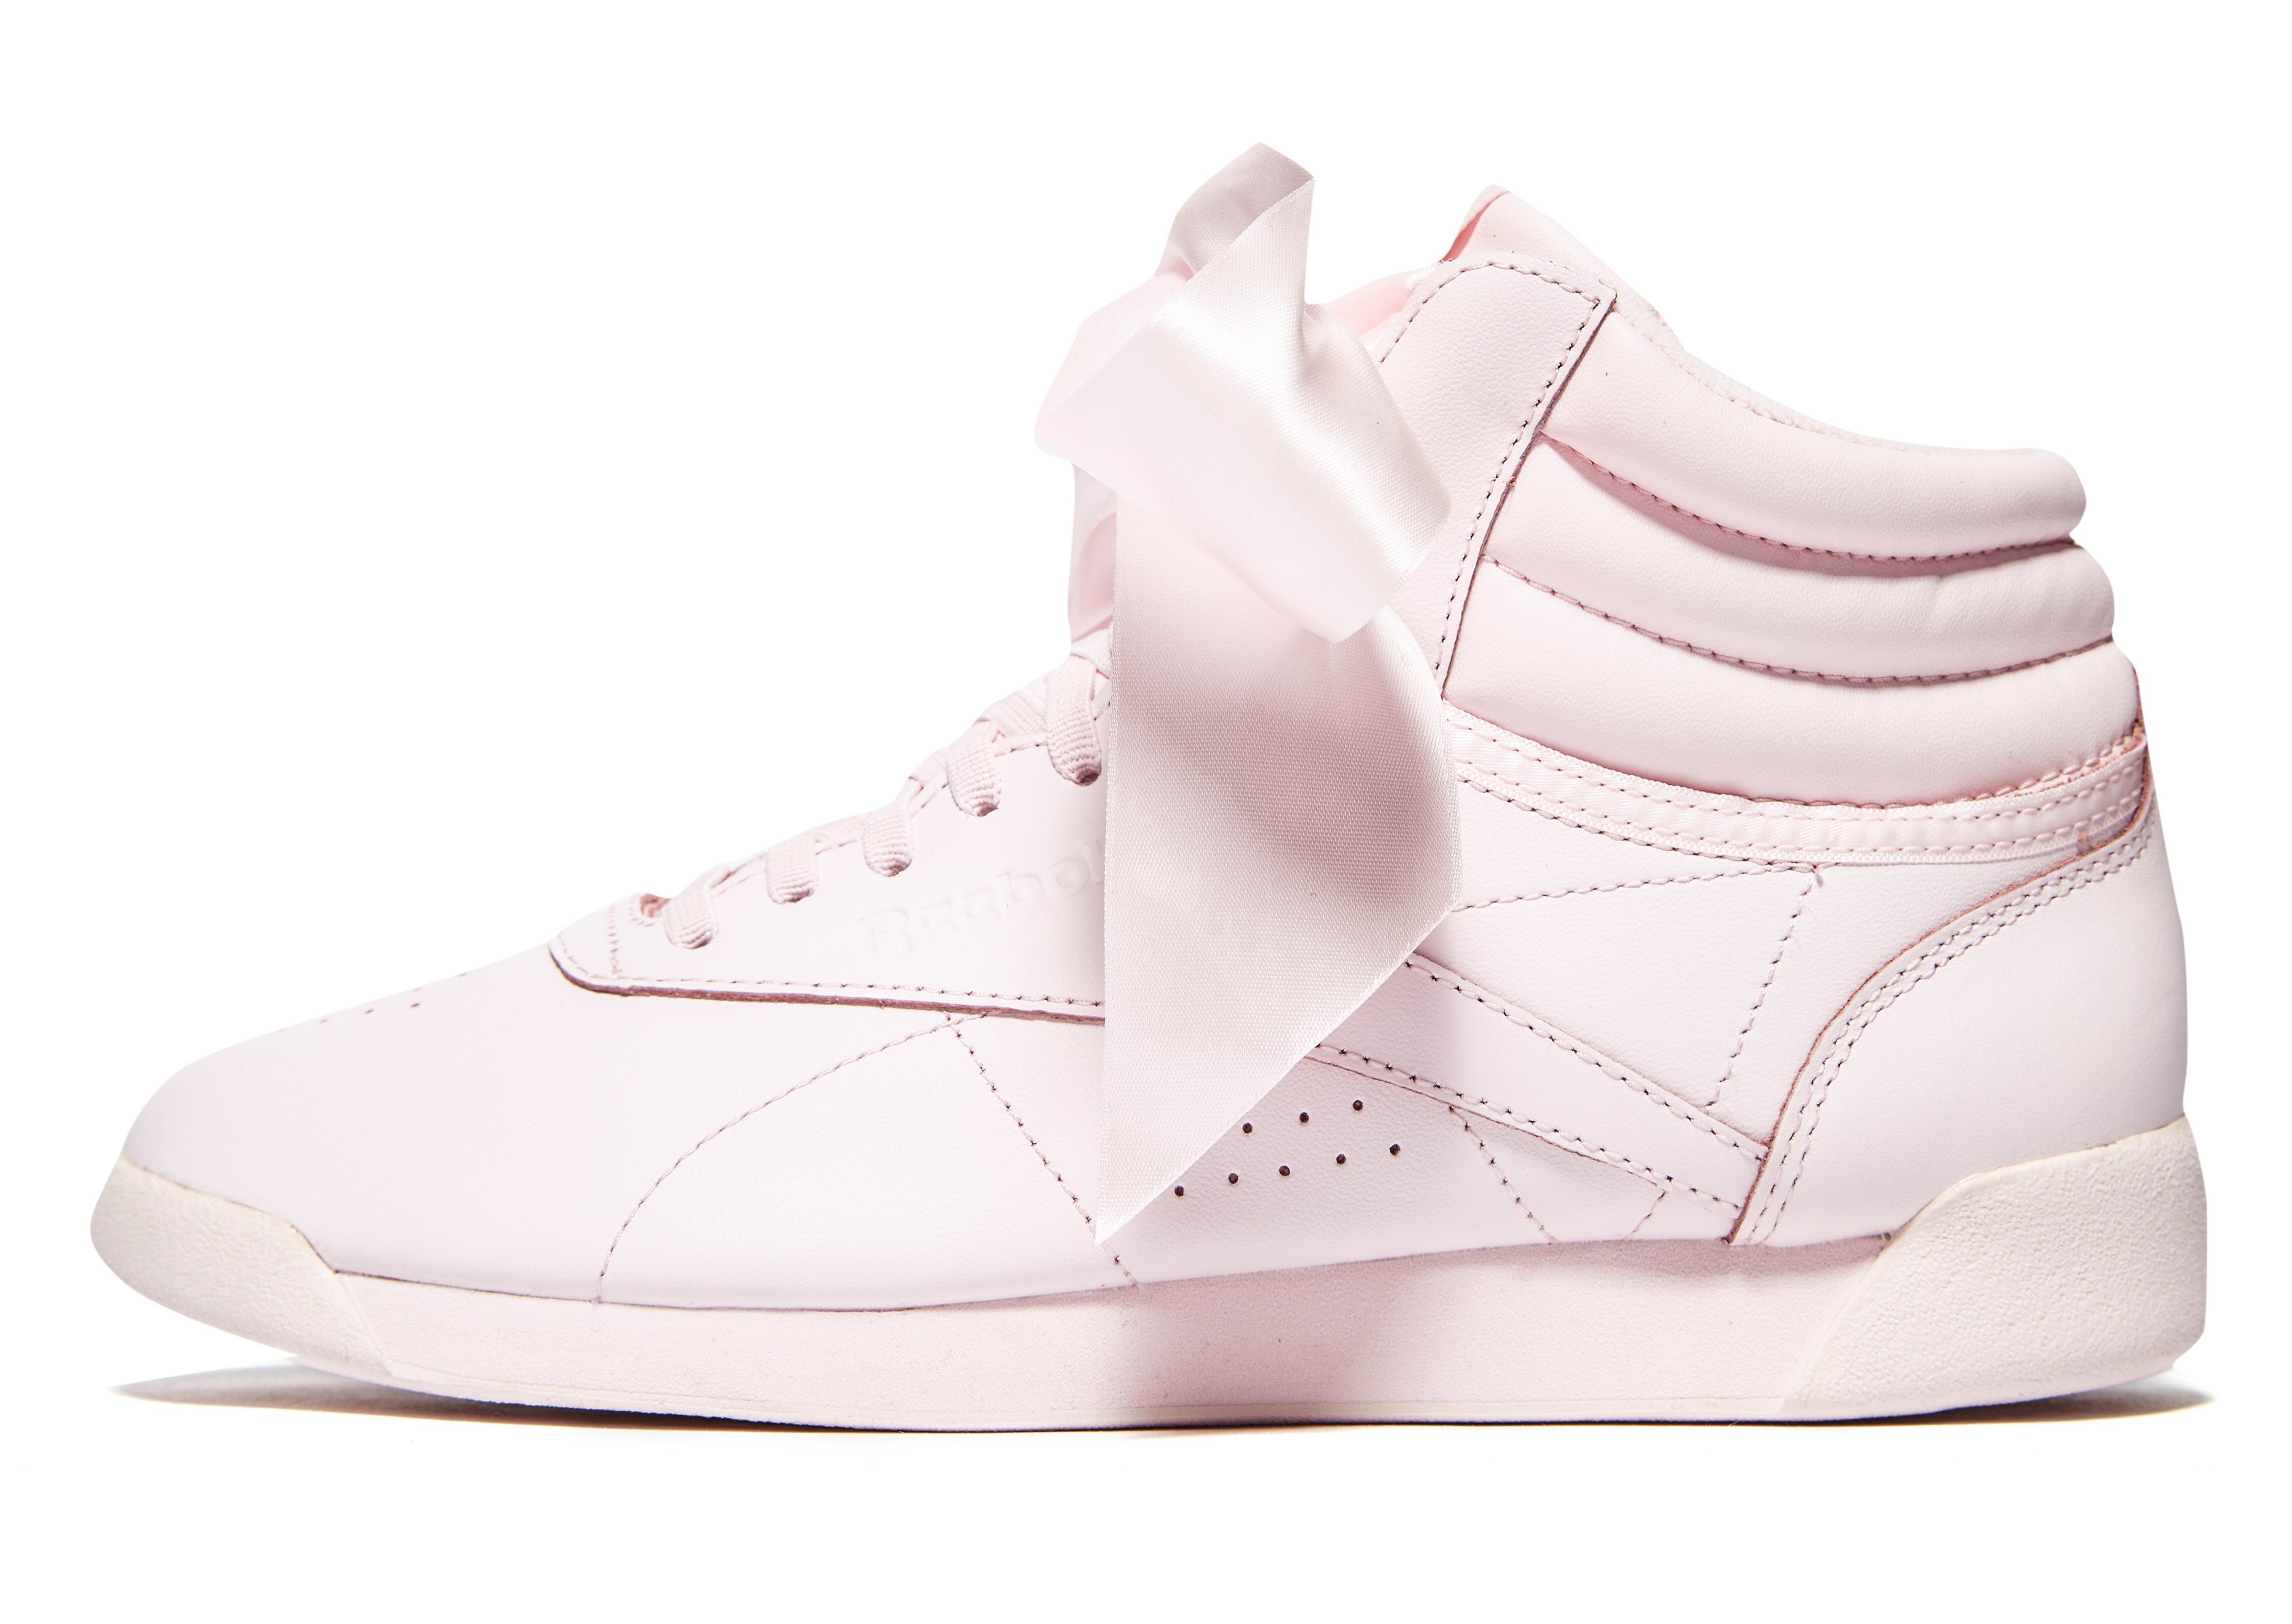 5a8e684289a Reebok Freestyle Hi Bow Women s